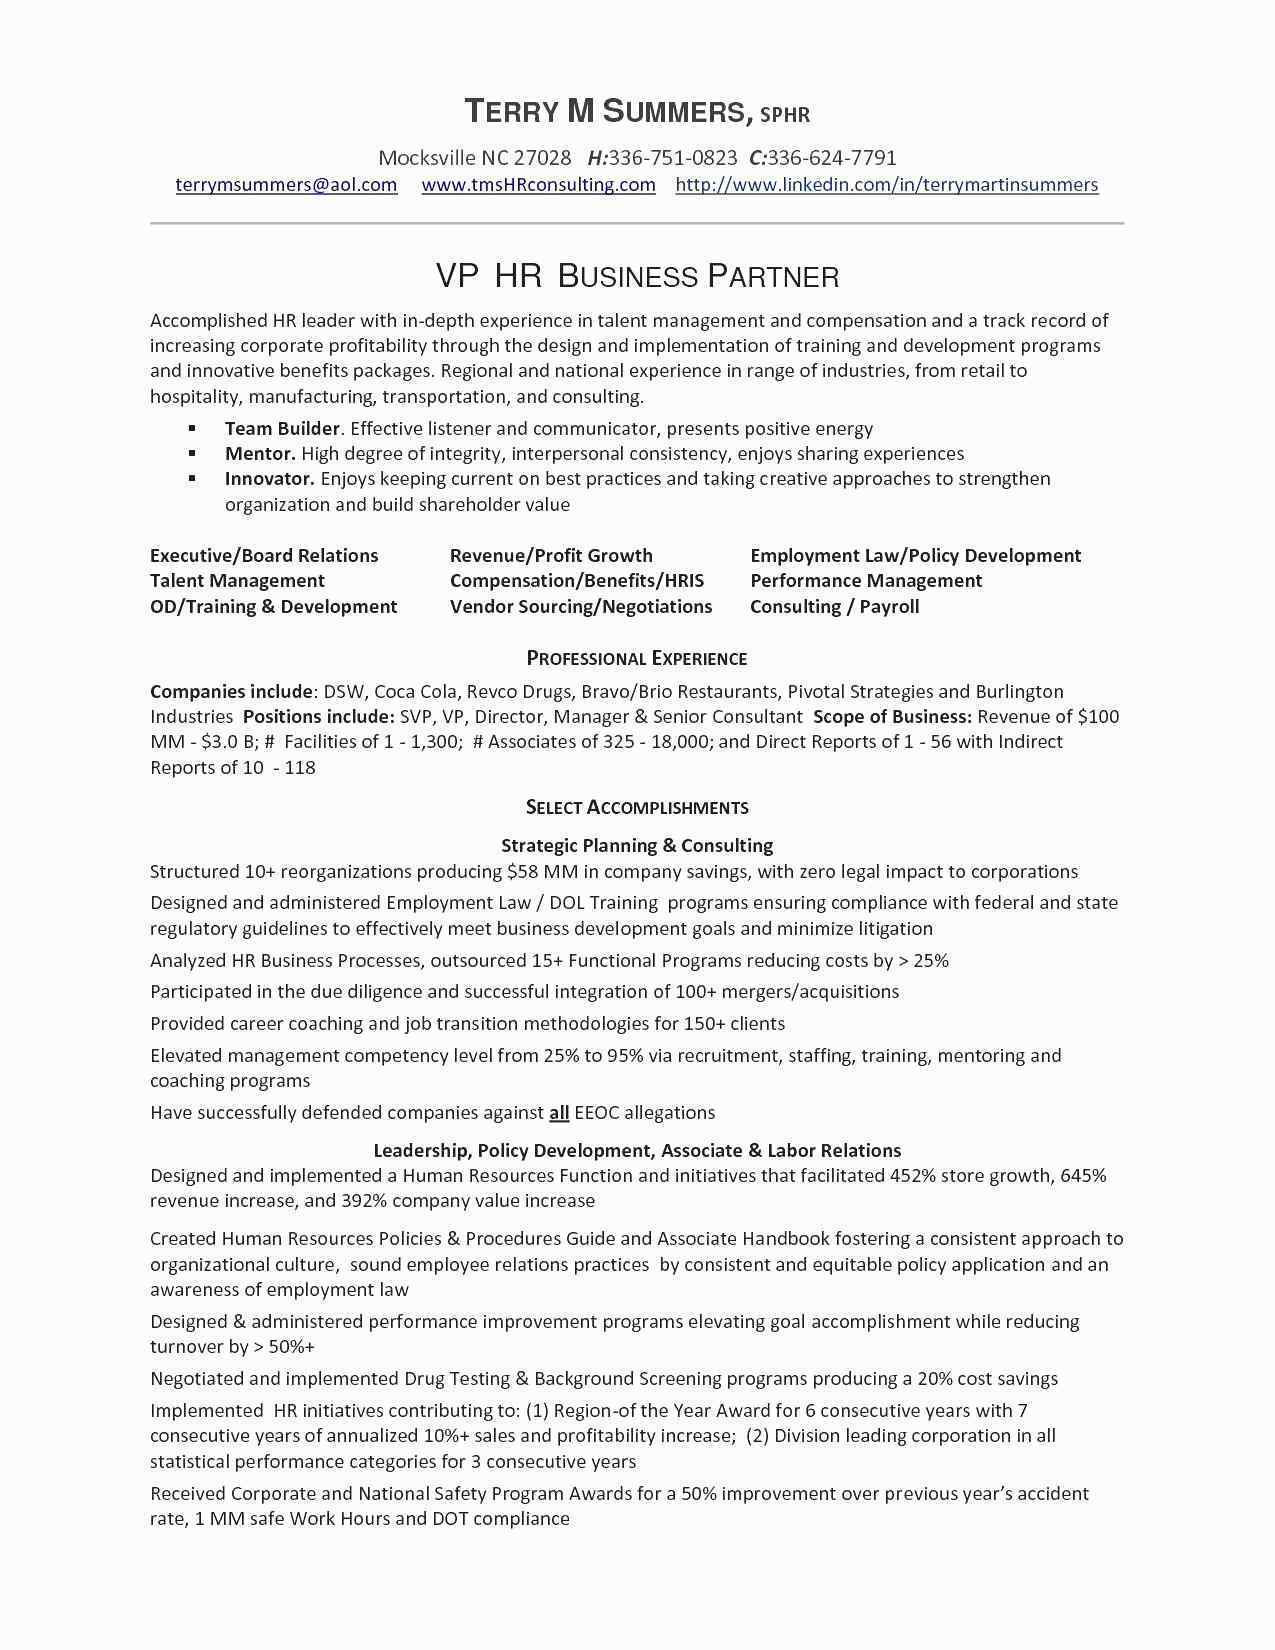 Supply Chain Management Resume Template - Logistics Management Sample Resume – Legacylendinggroup